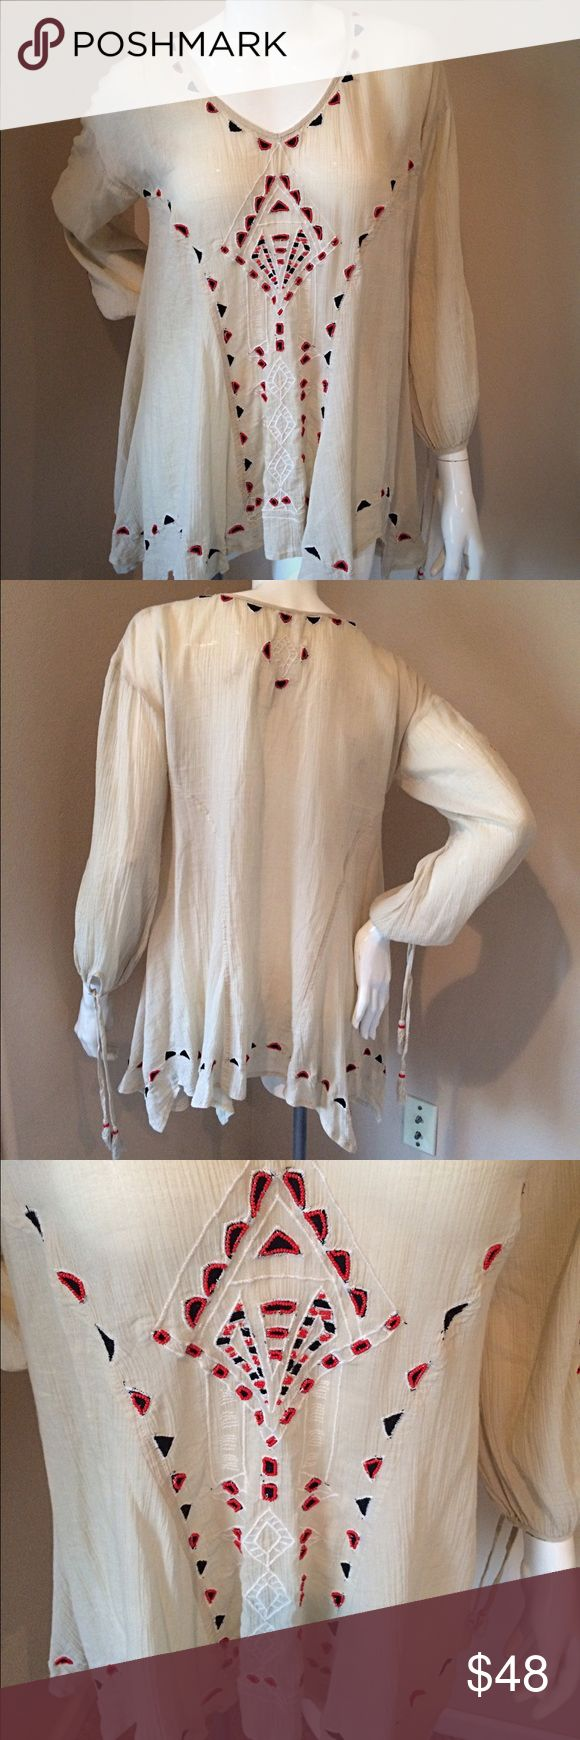 Free People beaded peasant blouse xs Free People cream beaded peasant top size xs. Beautiful embroidering with red beading. perfect slouchy fit. I would pair this top with a pair of skinny jeans,  floppy hat, and cute boots! Free People Tops Blouses